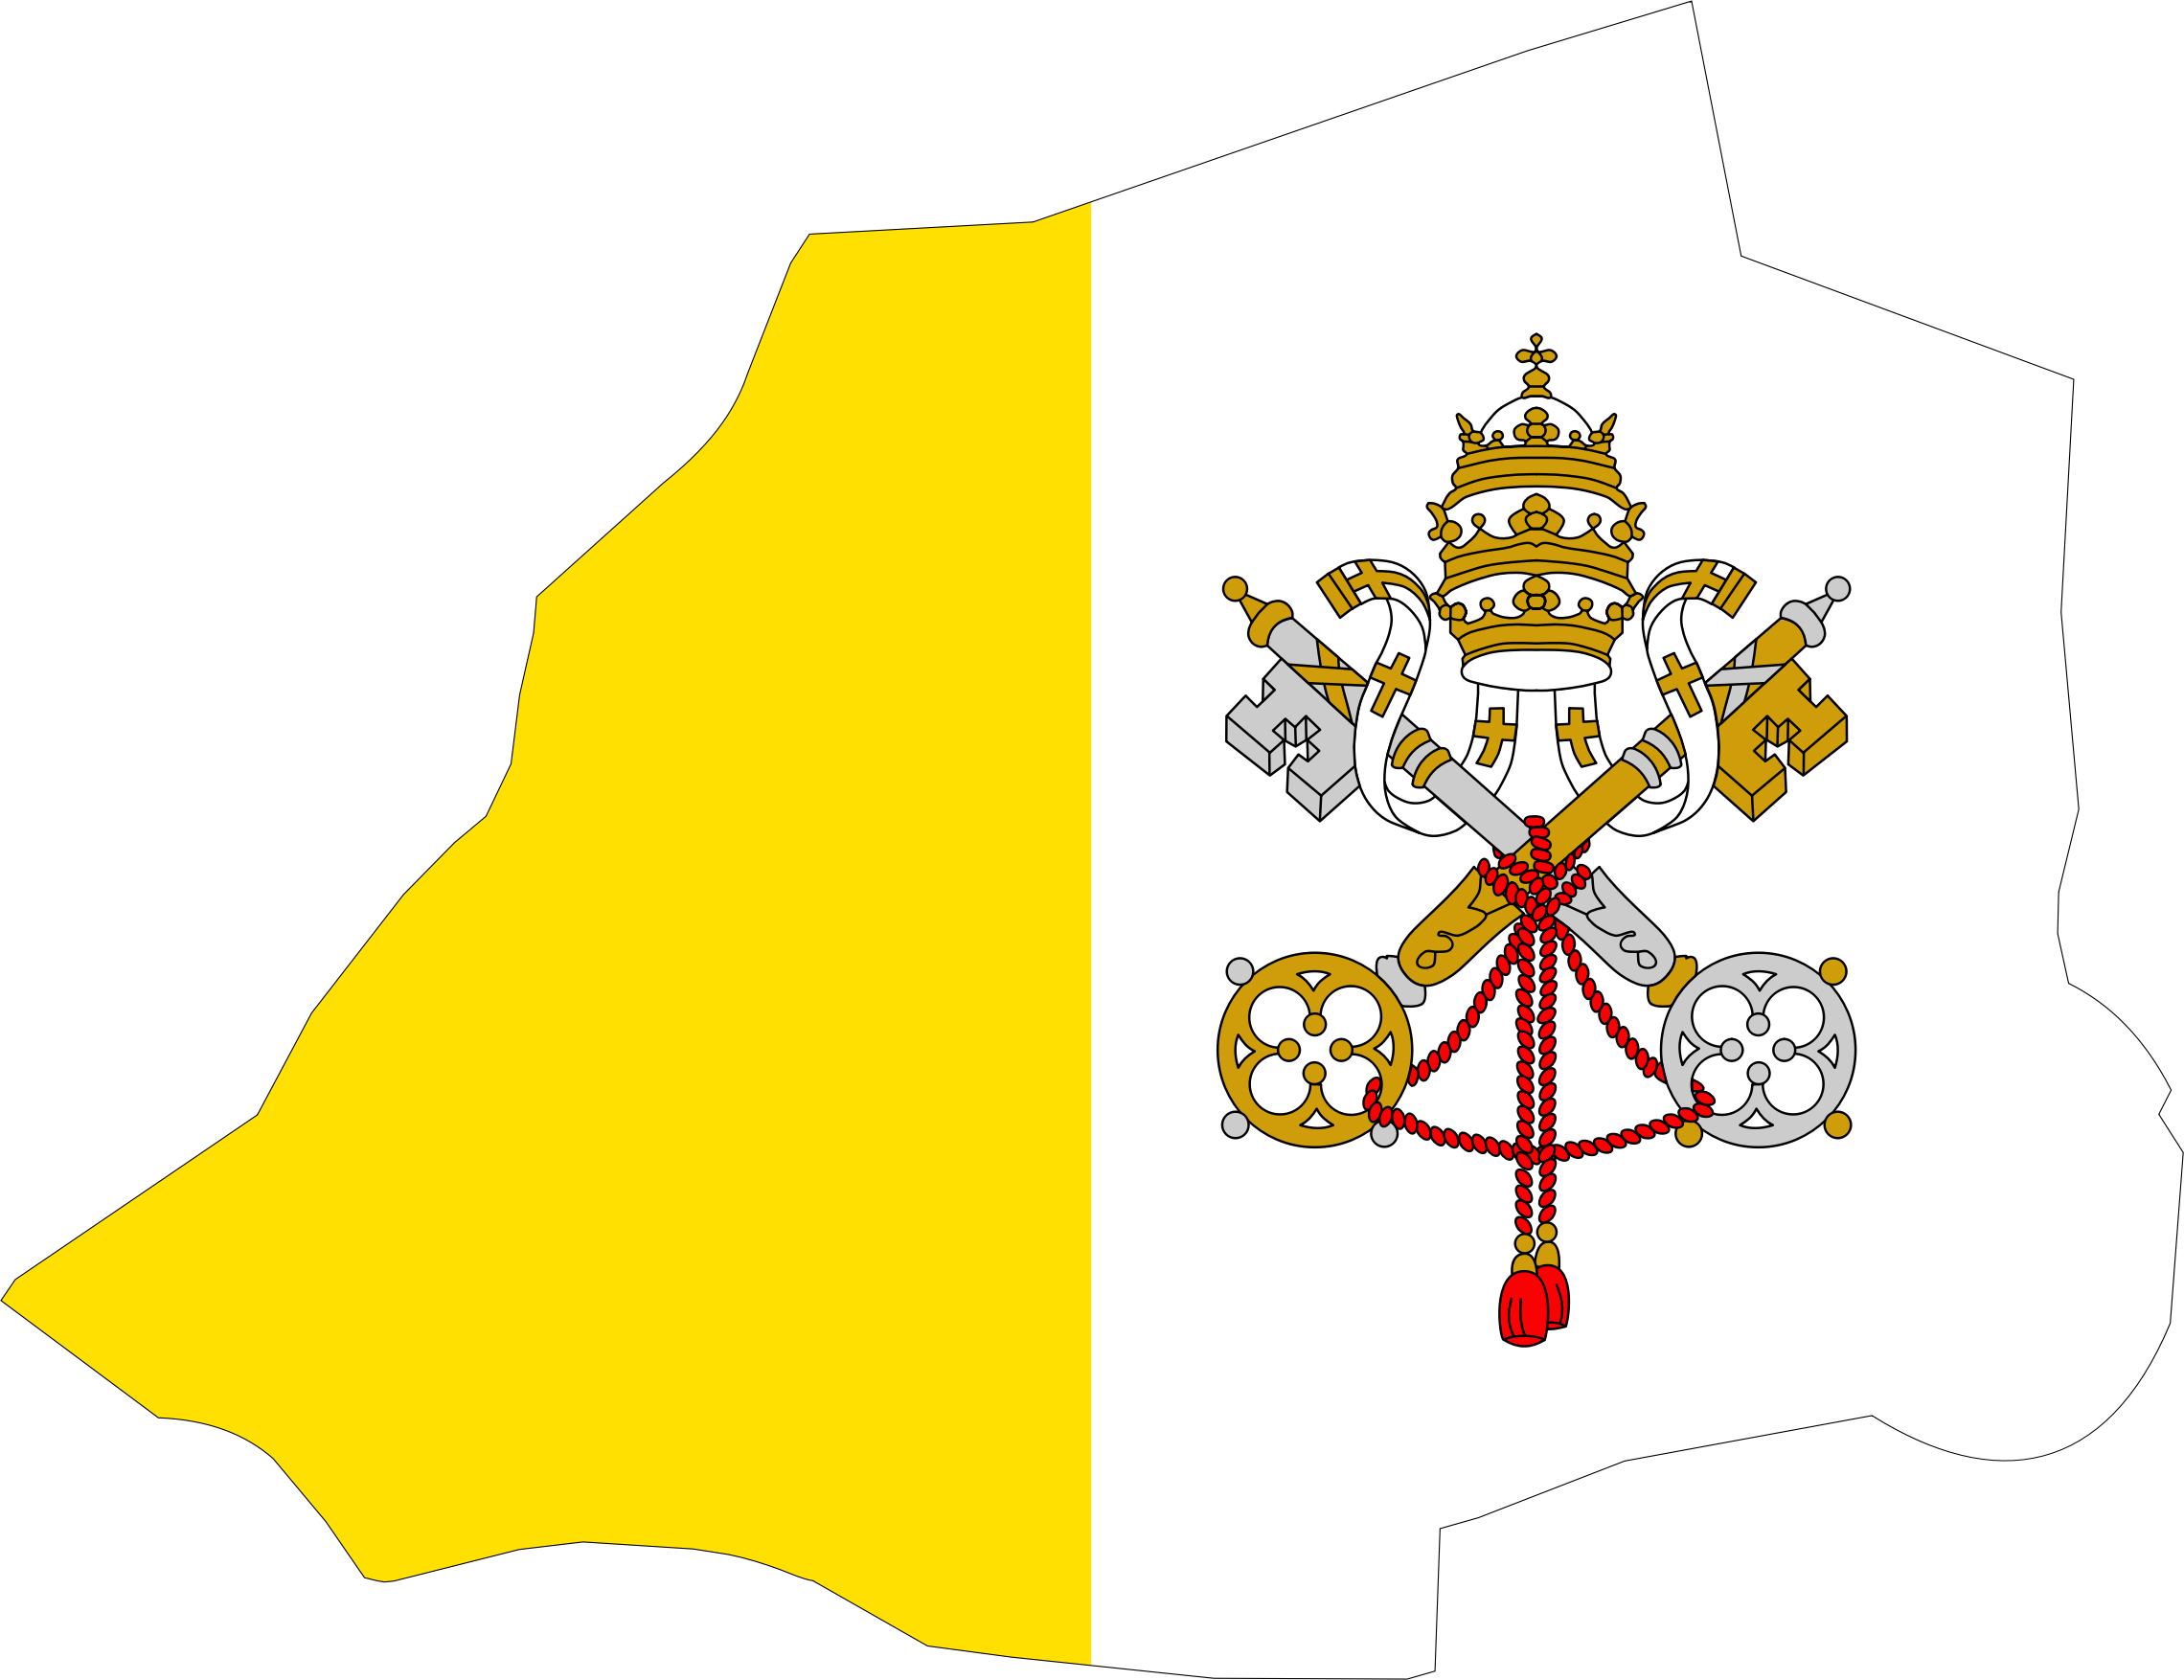 banner library City map clipart. Vatican flag big image.